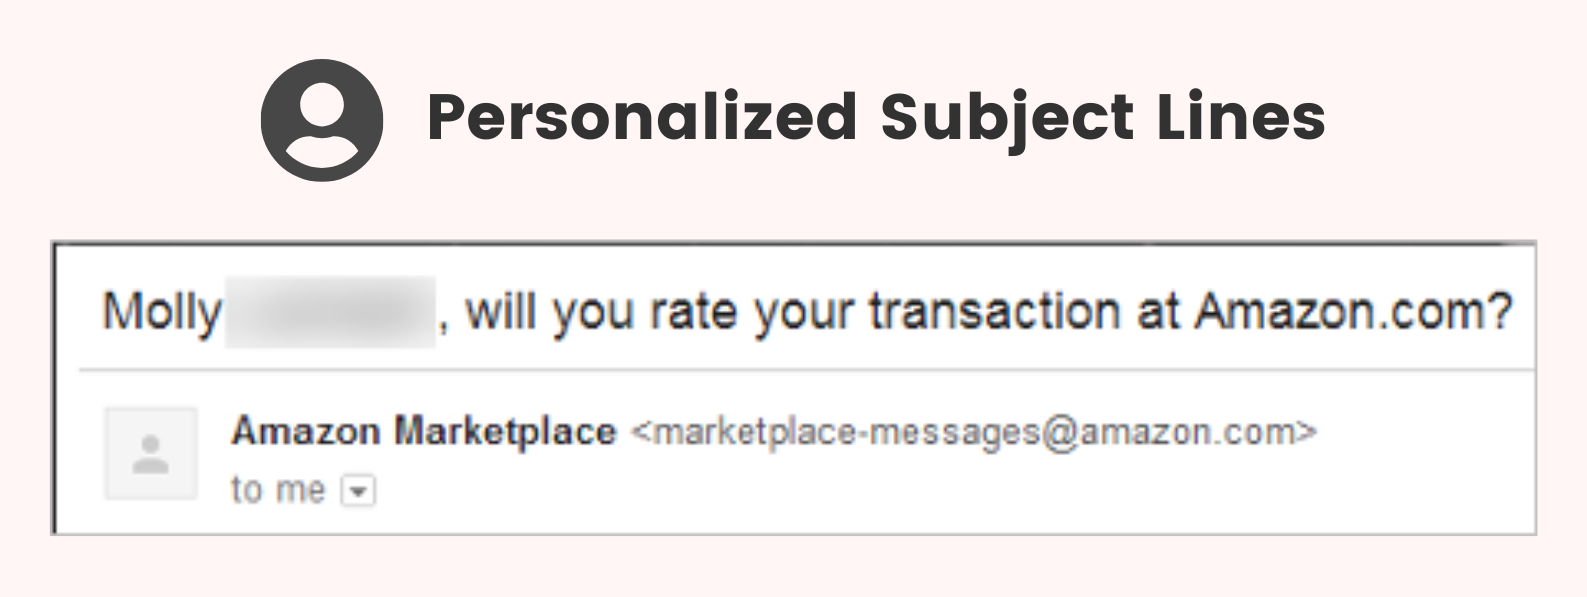 amazon personalized email subject lines